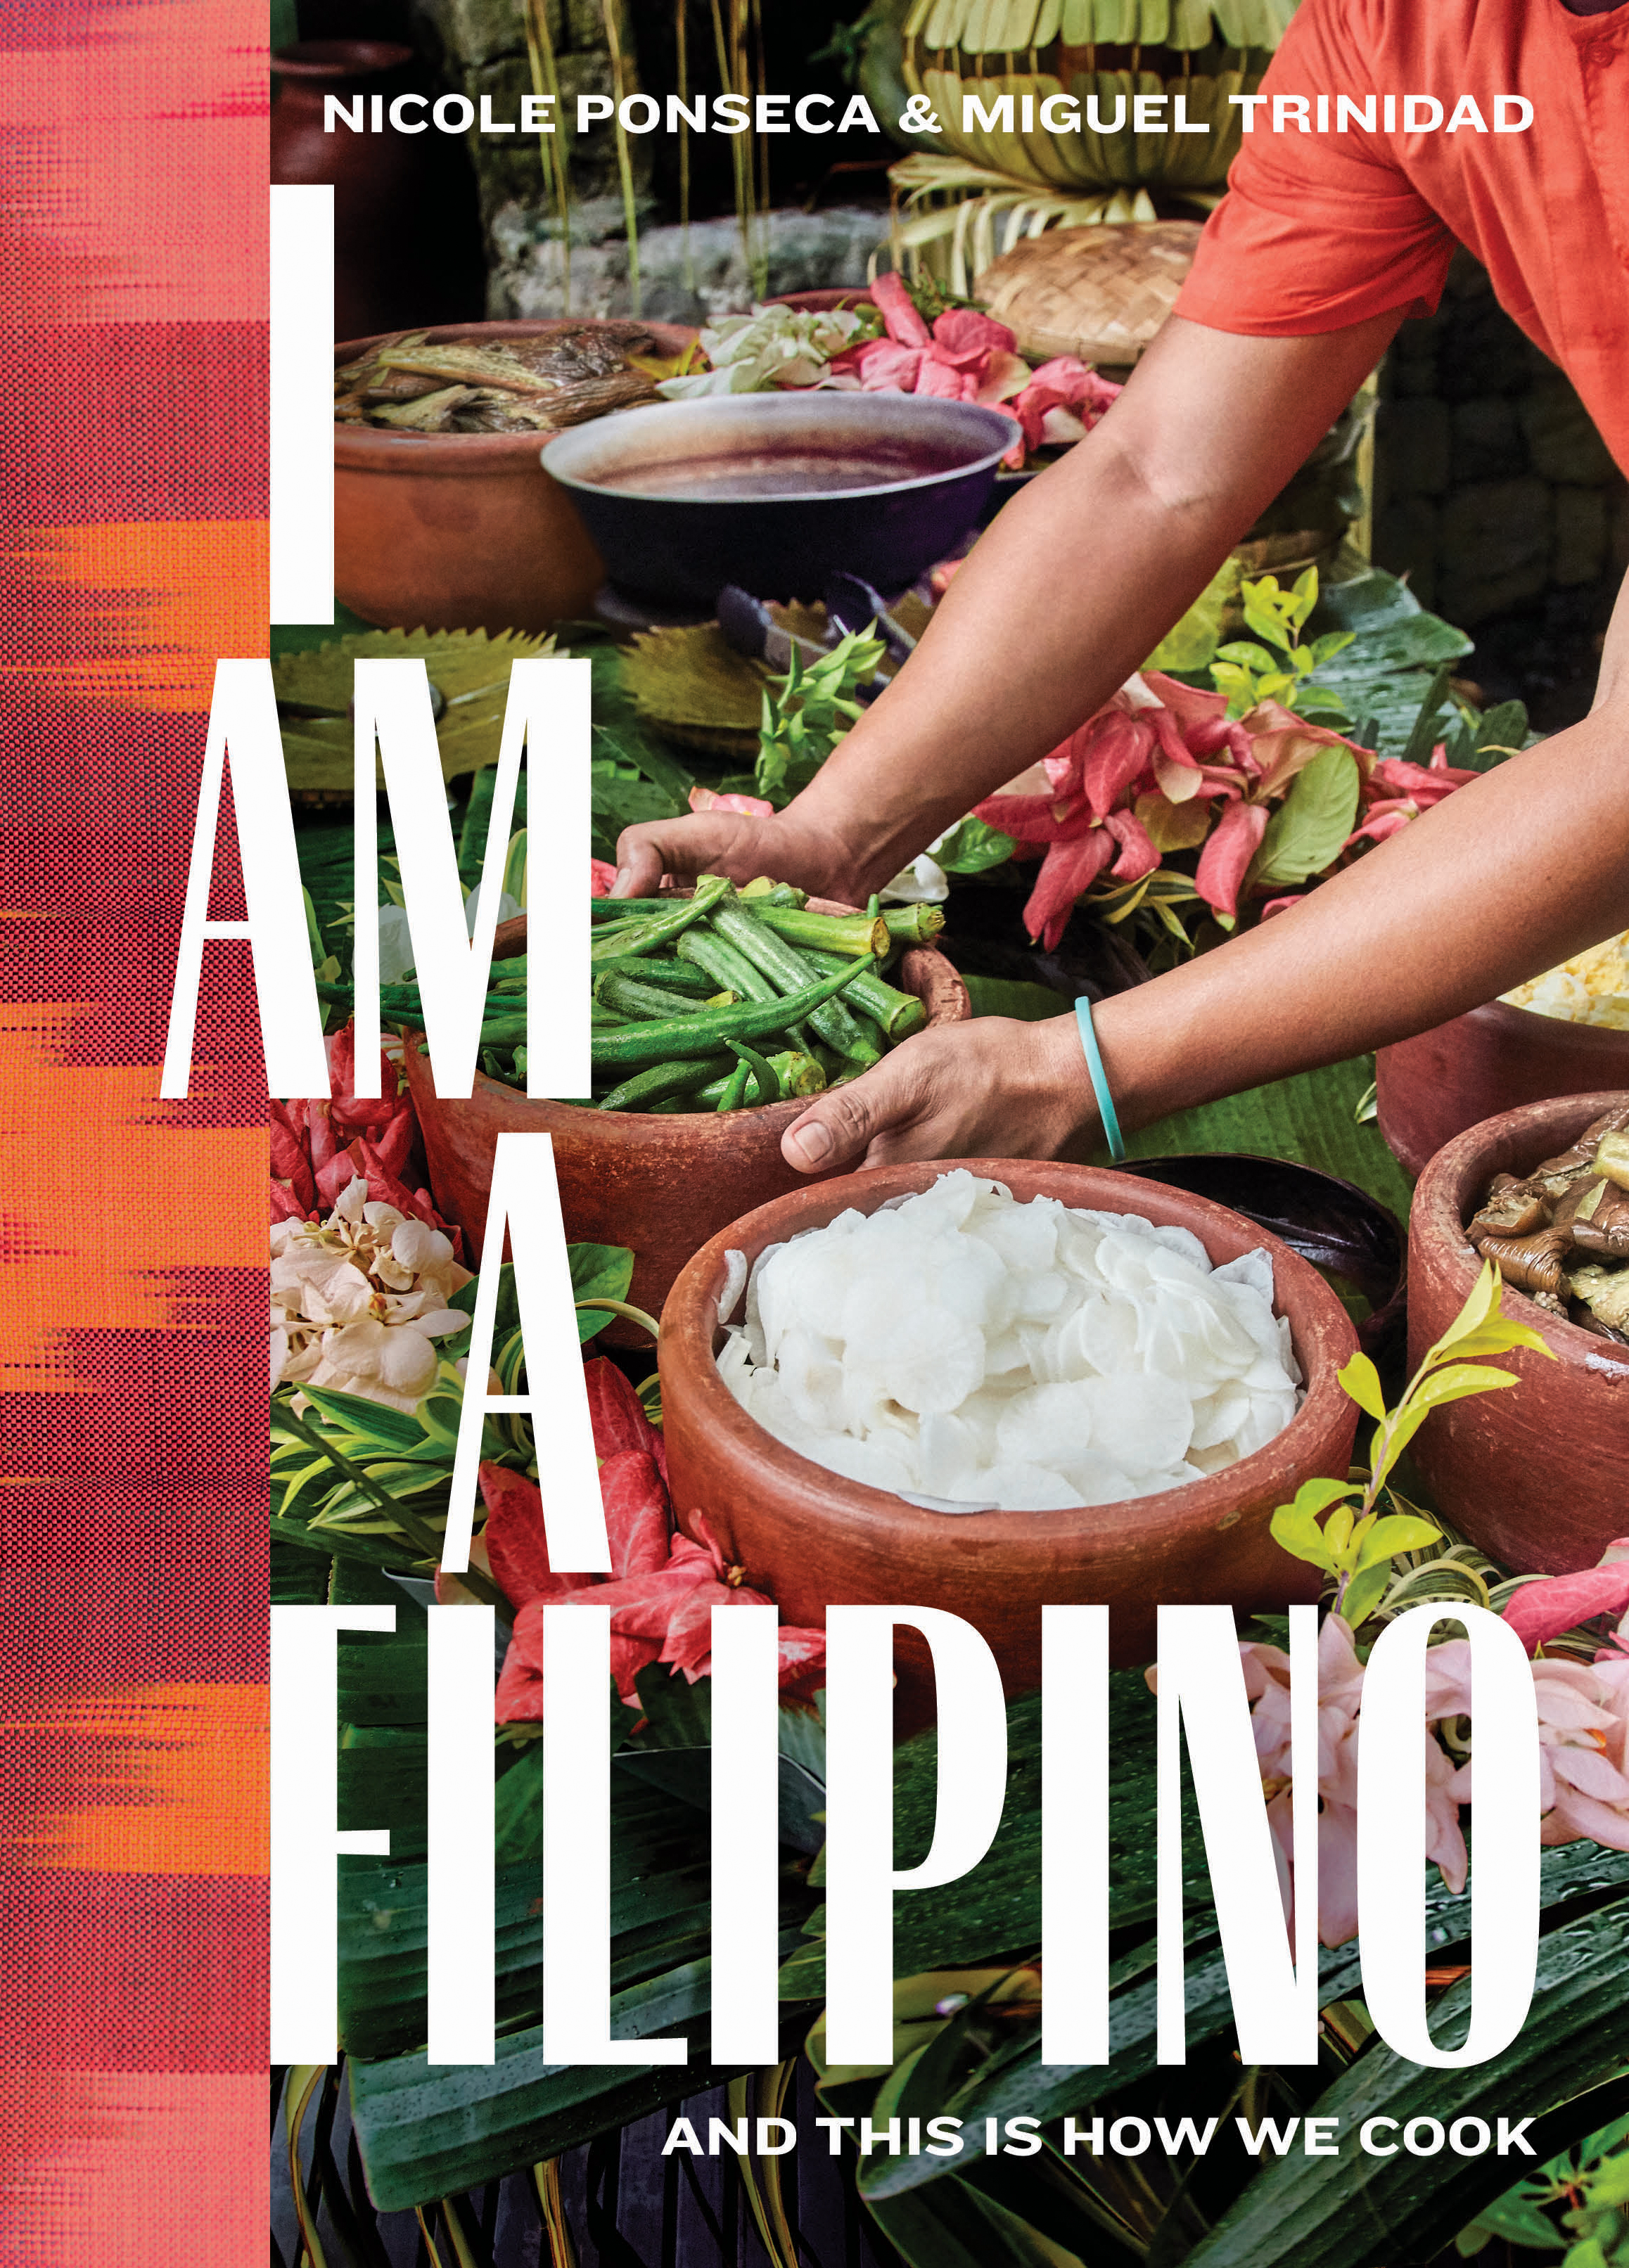 Excerpted from I Am a Filipino by Nicole Ponseca and Miguel Trinidad (Artisan Books). Copyright © 2018. Photographs by Justin Walker.